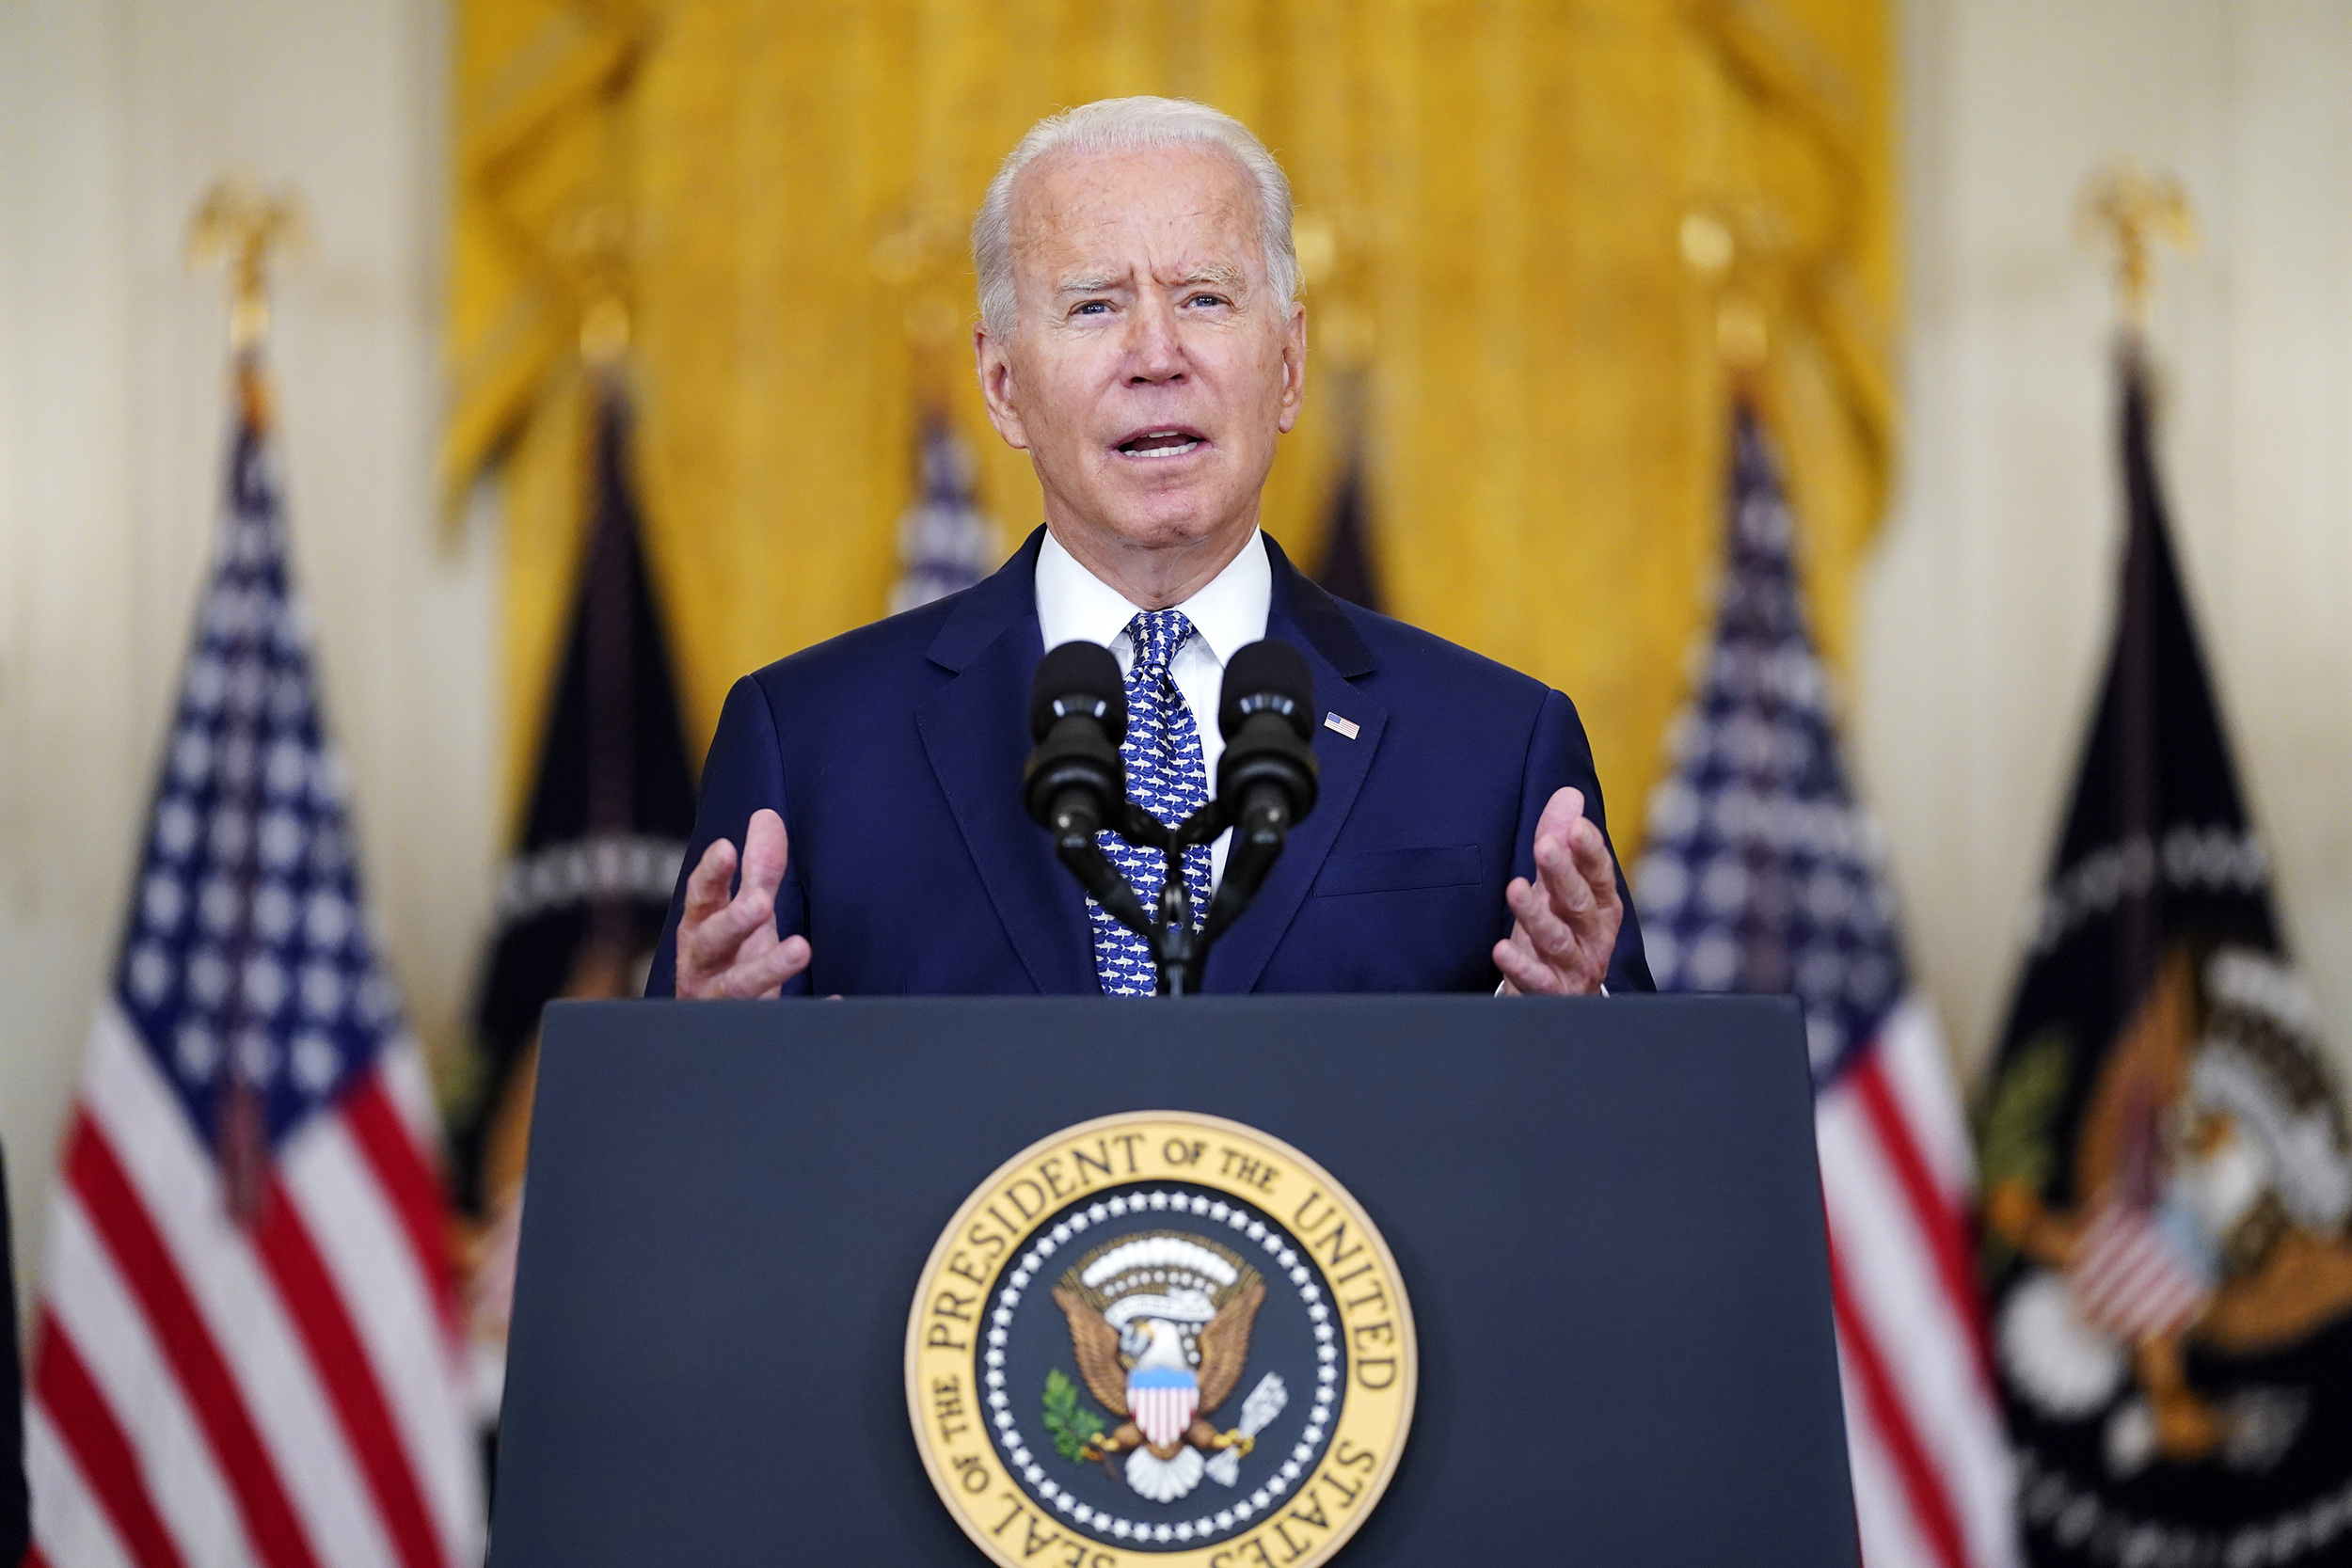 Biden celebrates a bipartisan win briefly overshadowed by Cuomo